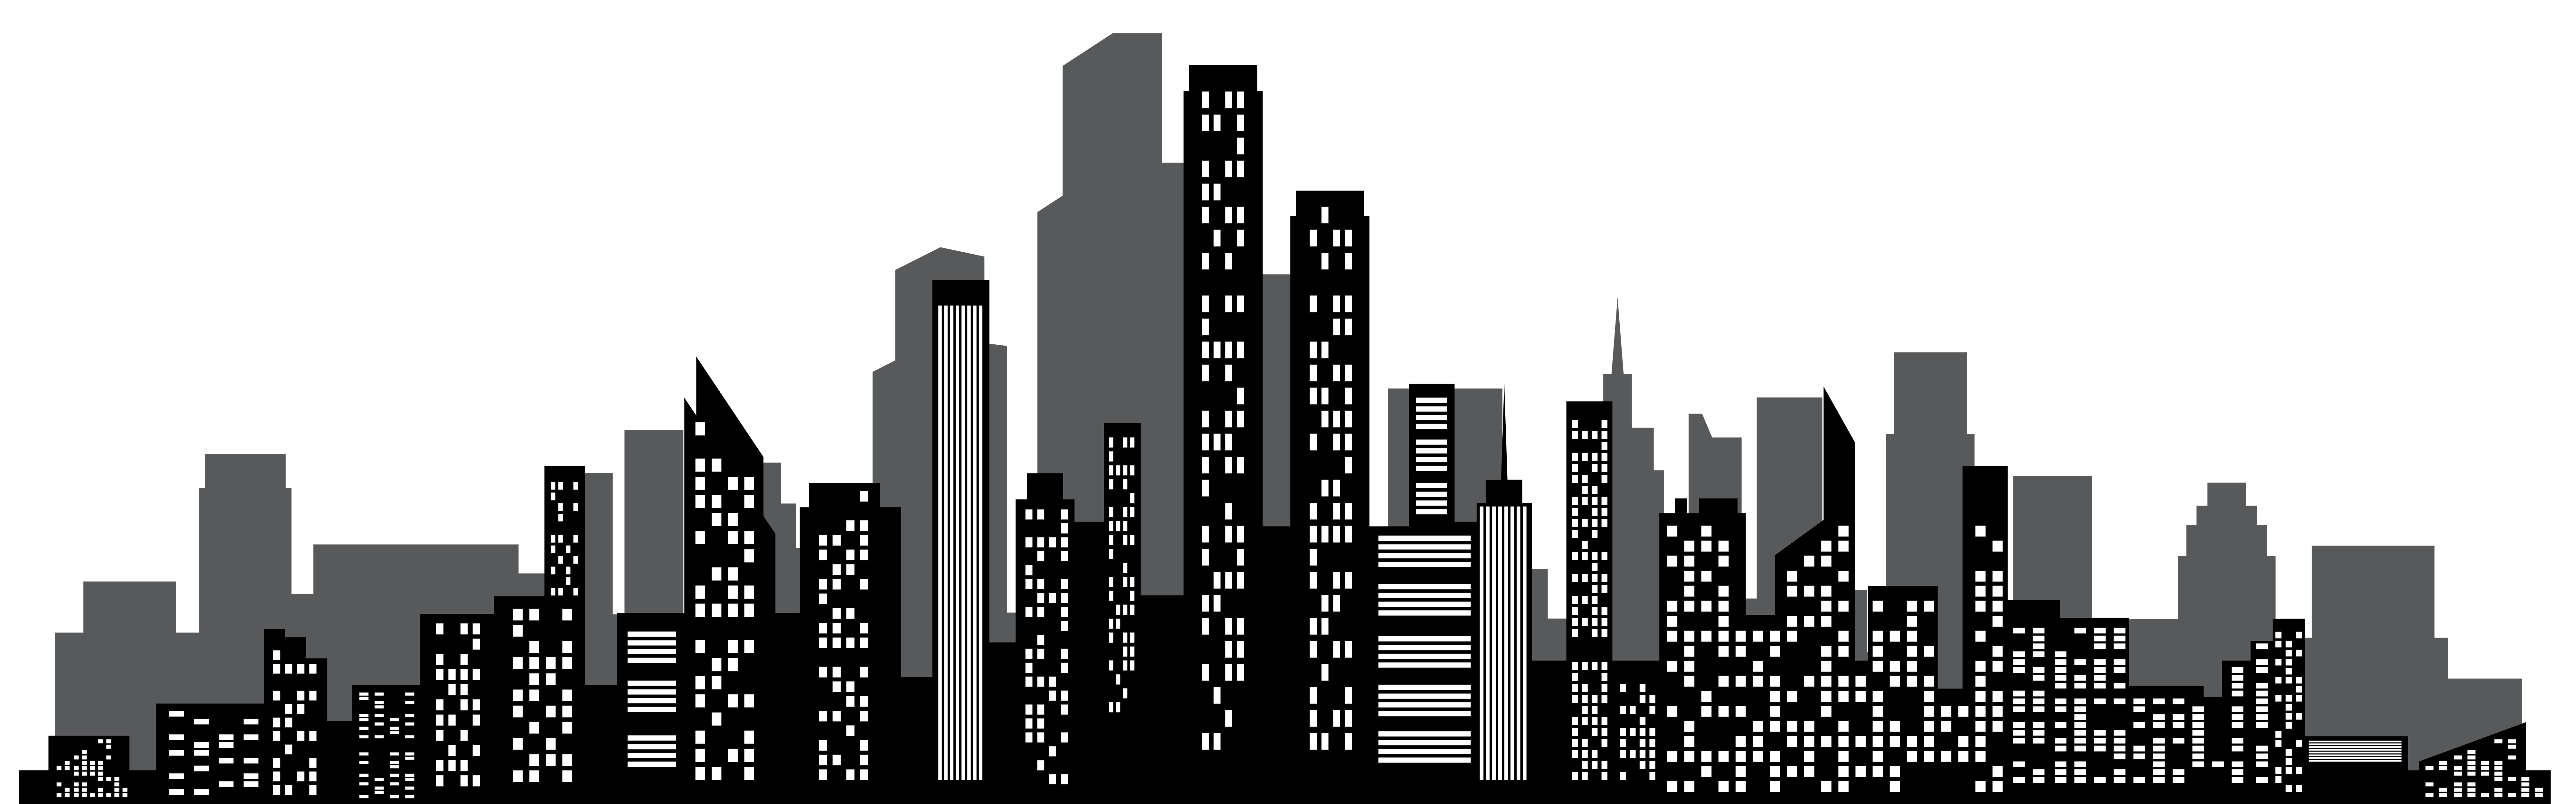 Silhouette at getdrawings com. Cityscape clipart